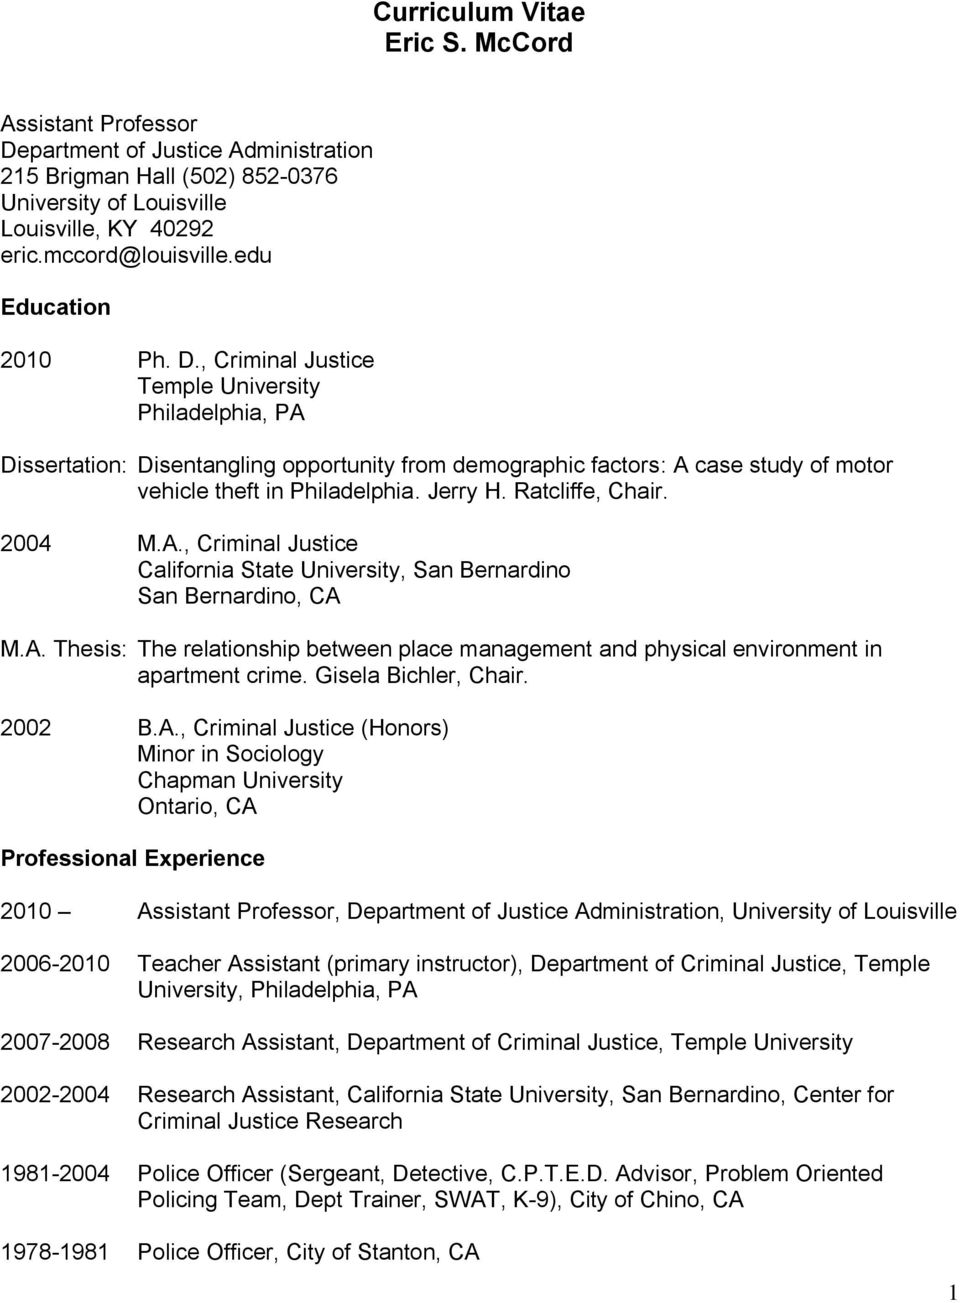 Jerry H. Ratcliffe, Chair. 2004 M.A., Criminal Justice California State University, San Bernardino San Bernardino, CA M.A. Thesis: The relationship between place management and physical environment in apartment crime.